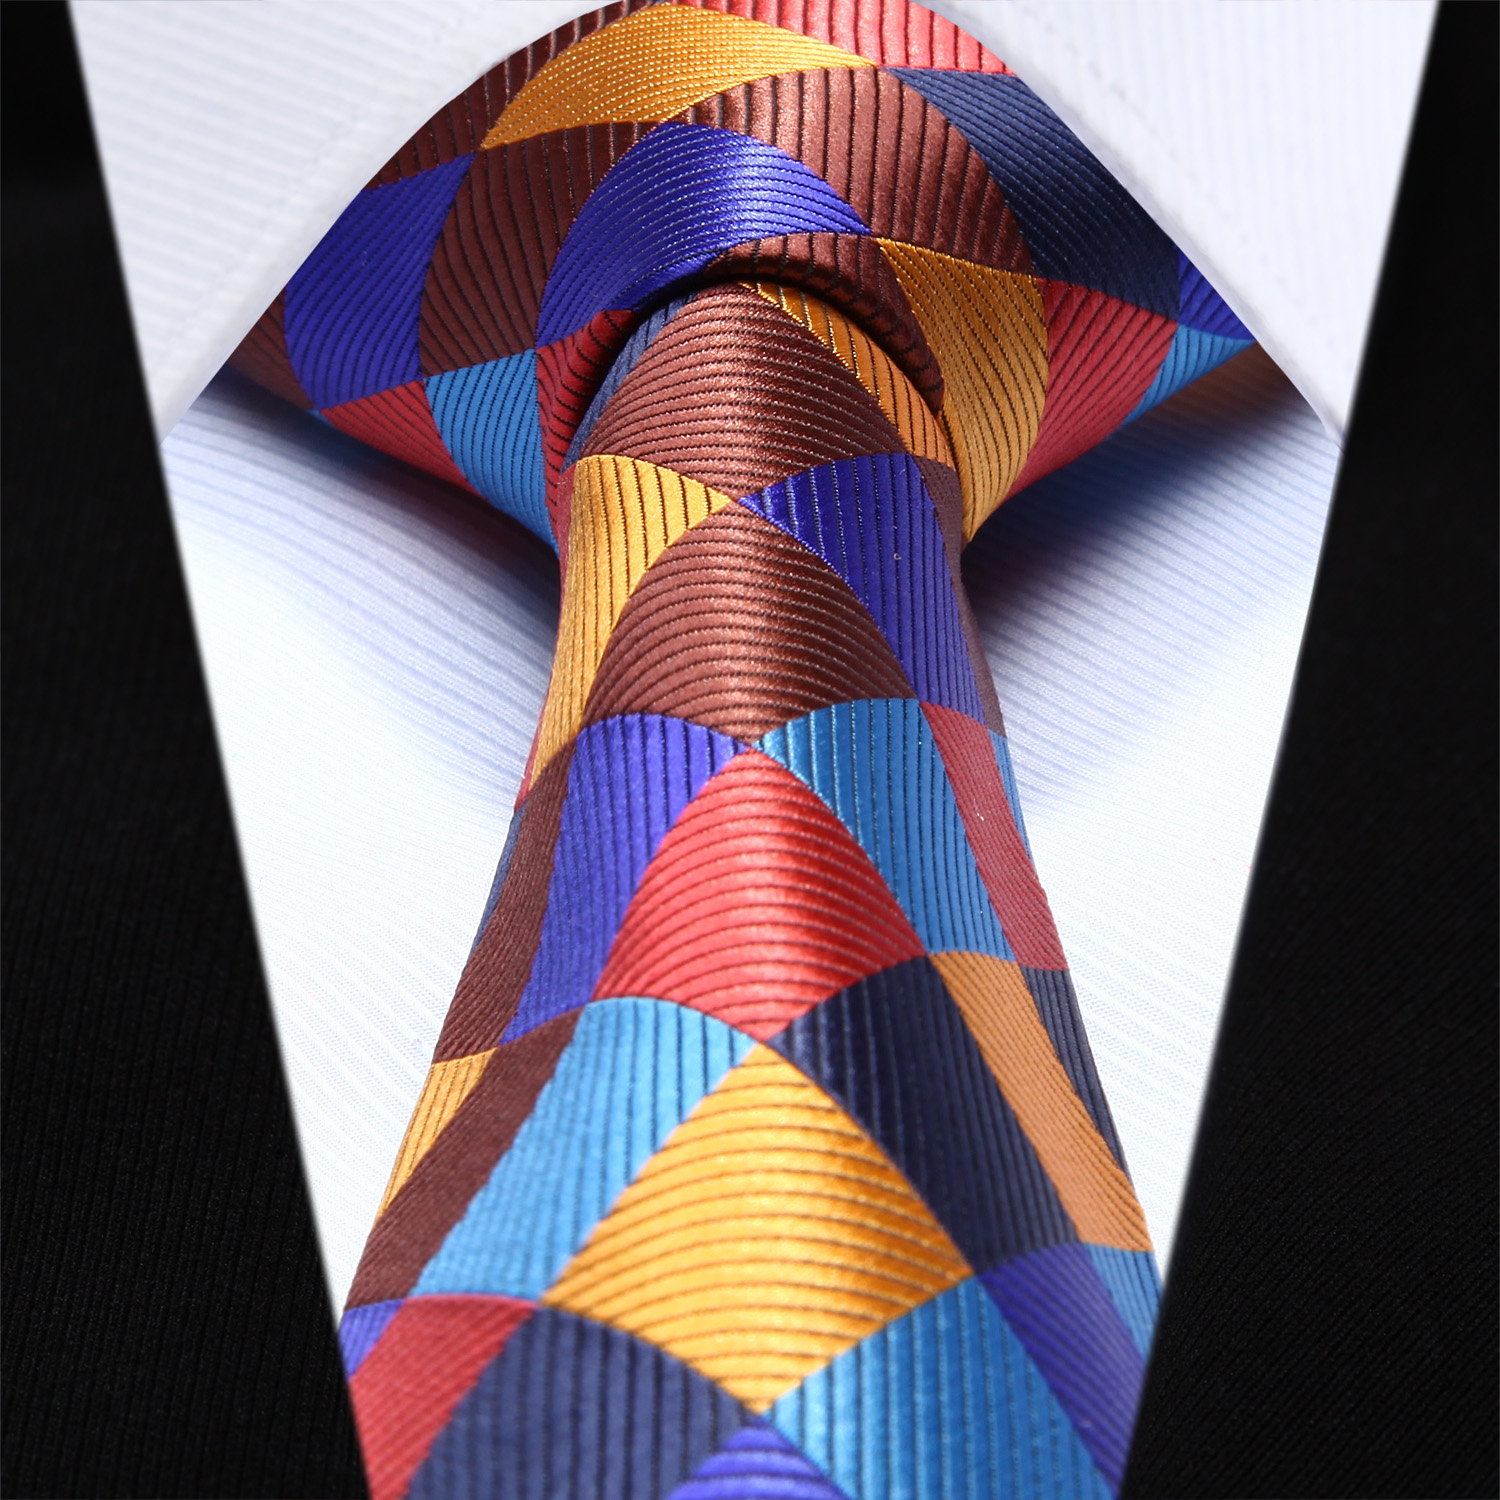 TC703N8 Orange Blue Brown Check 3.4'' Silk Jacquard Woven Mens Ties Necktie Party Wedding Tie